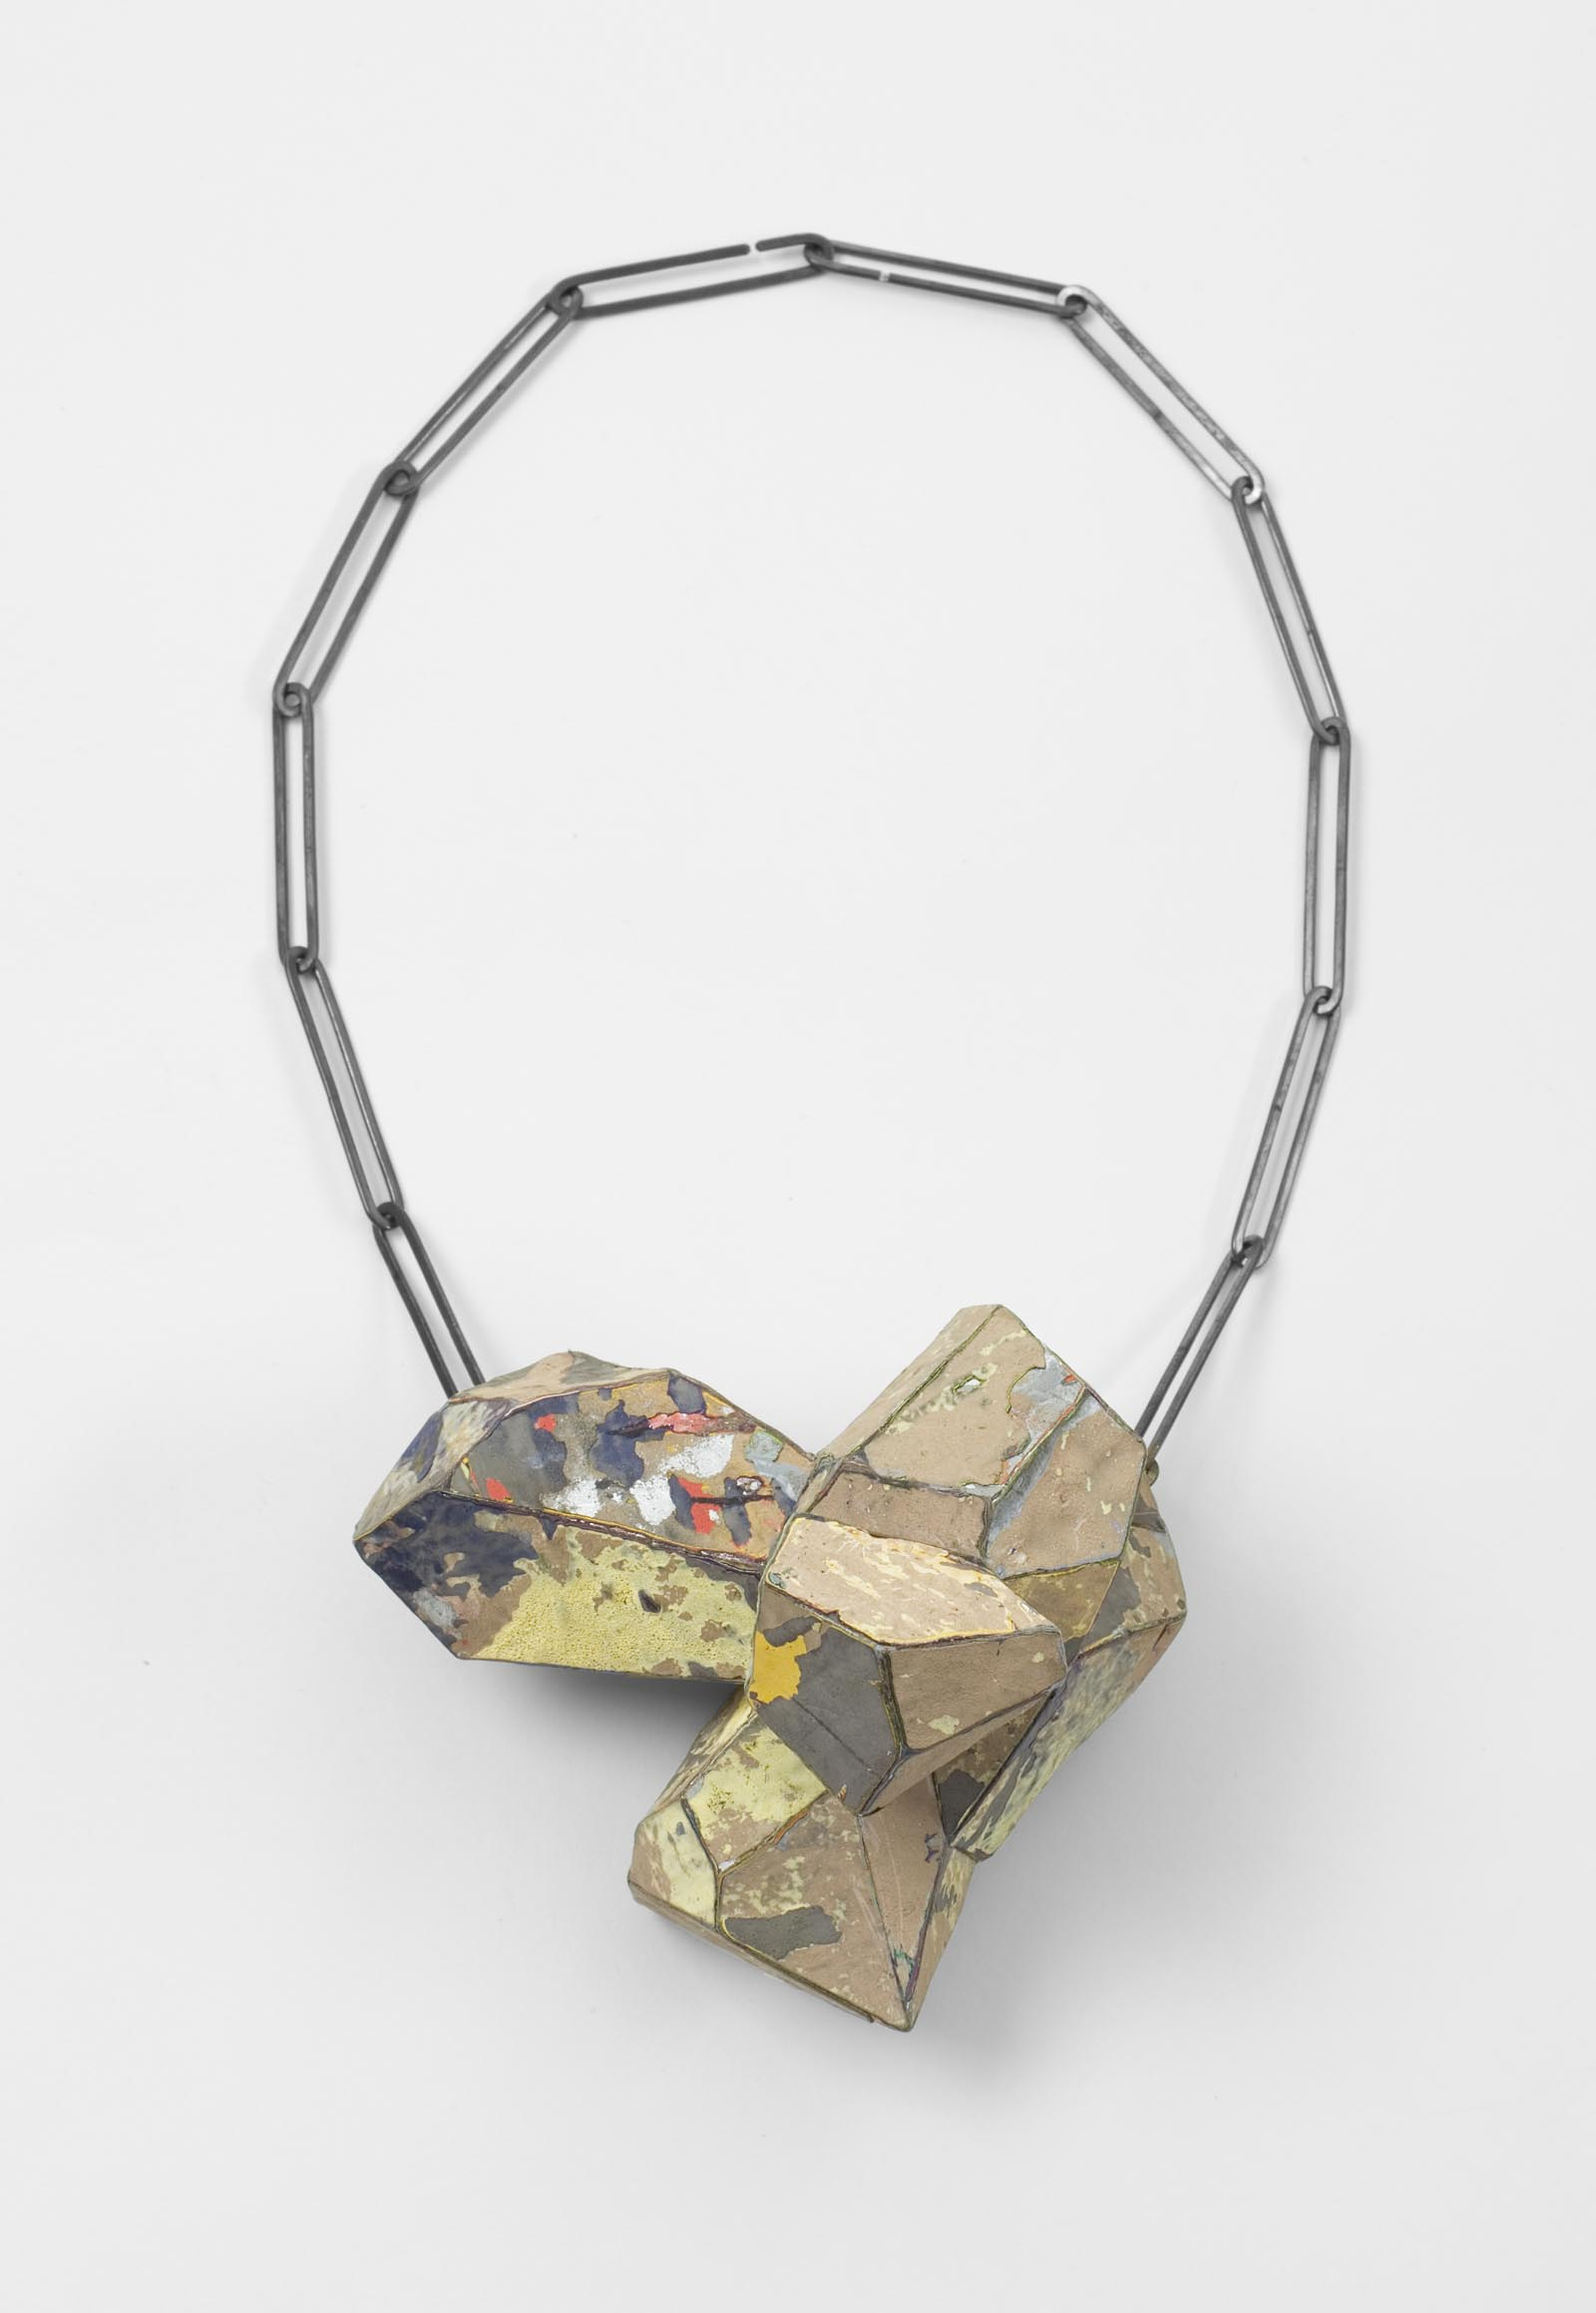 """Stained"" I Necklace, 2012 I Graffiti, silver I Photo: Mirei Takeuchi"